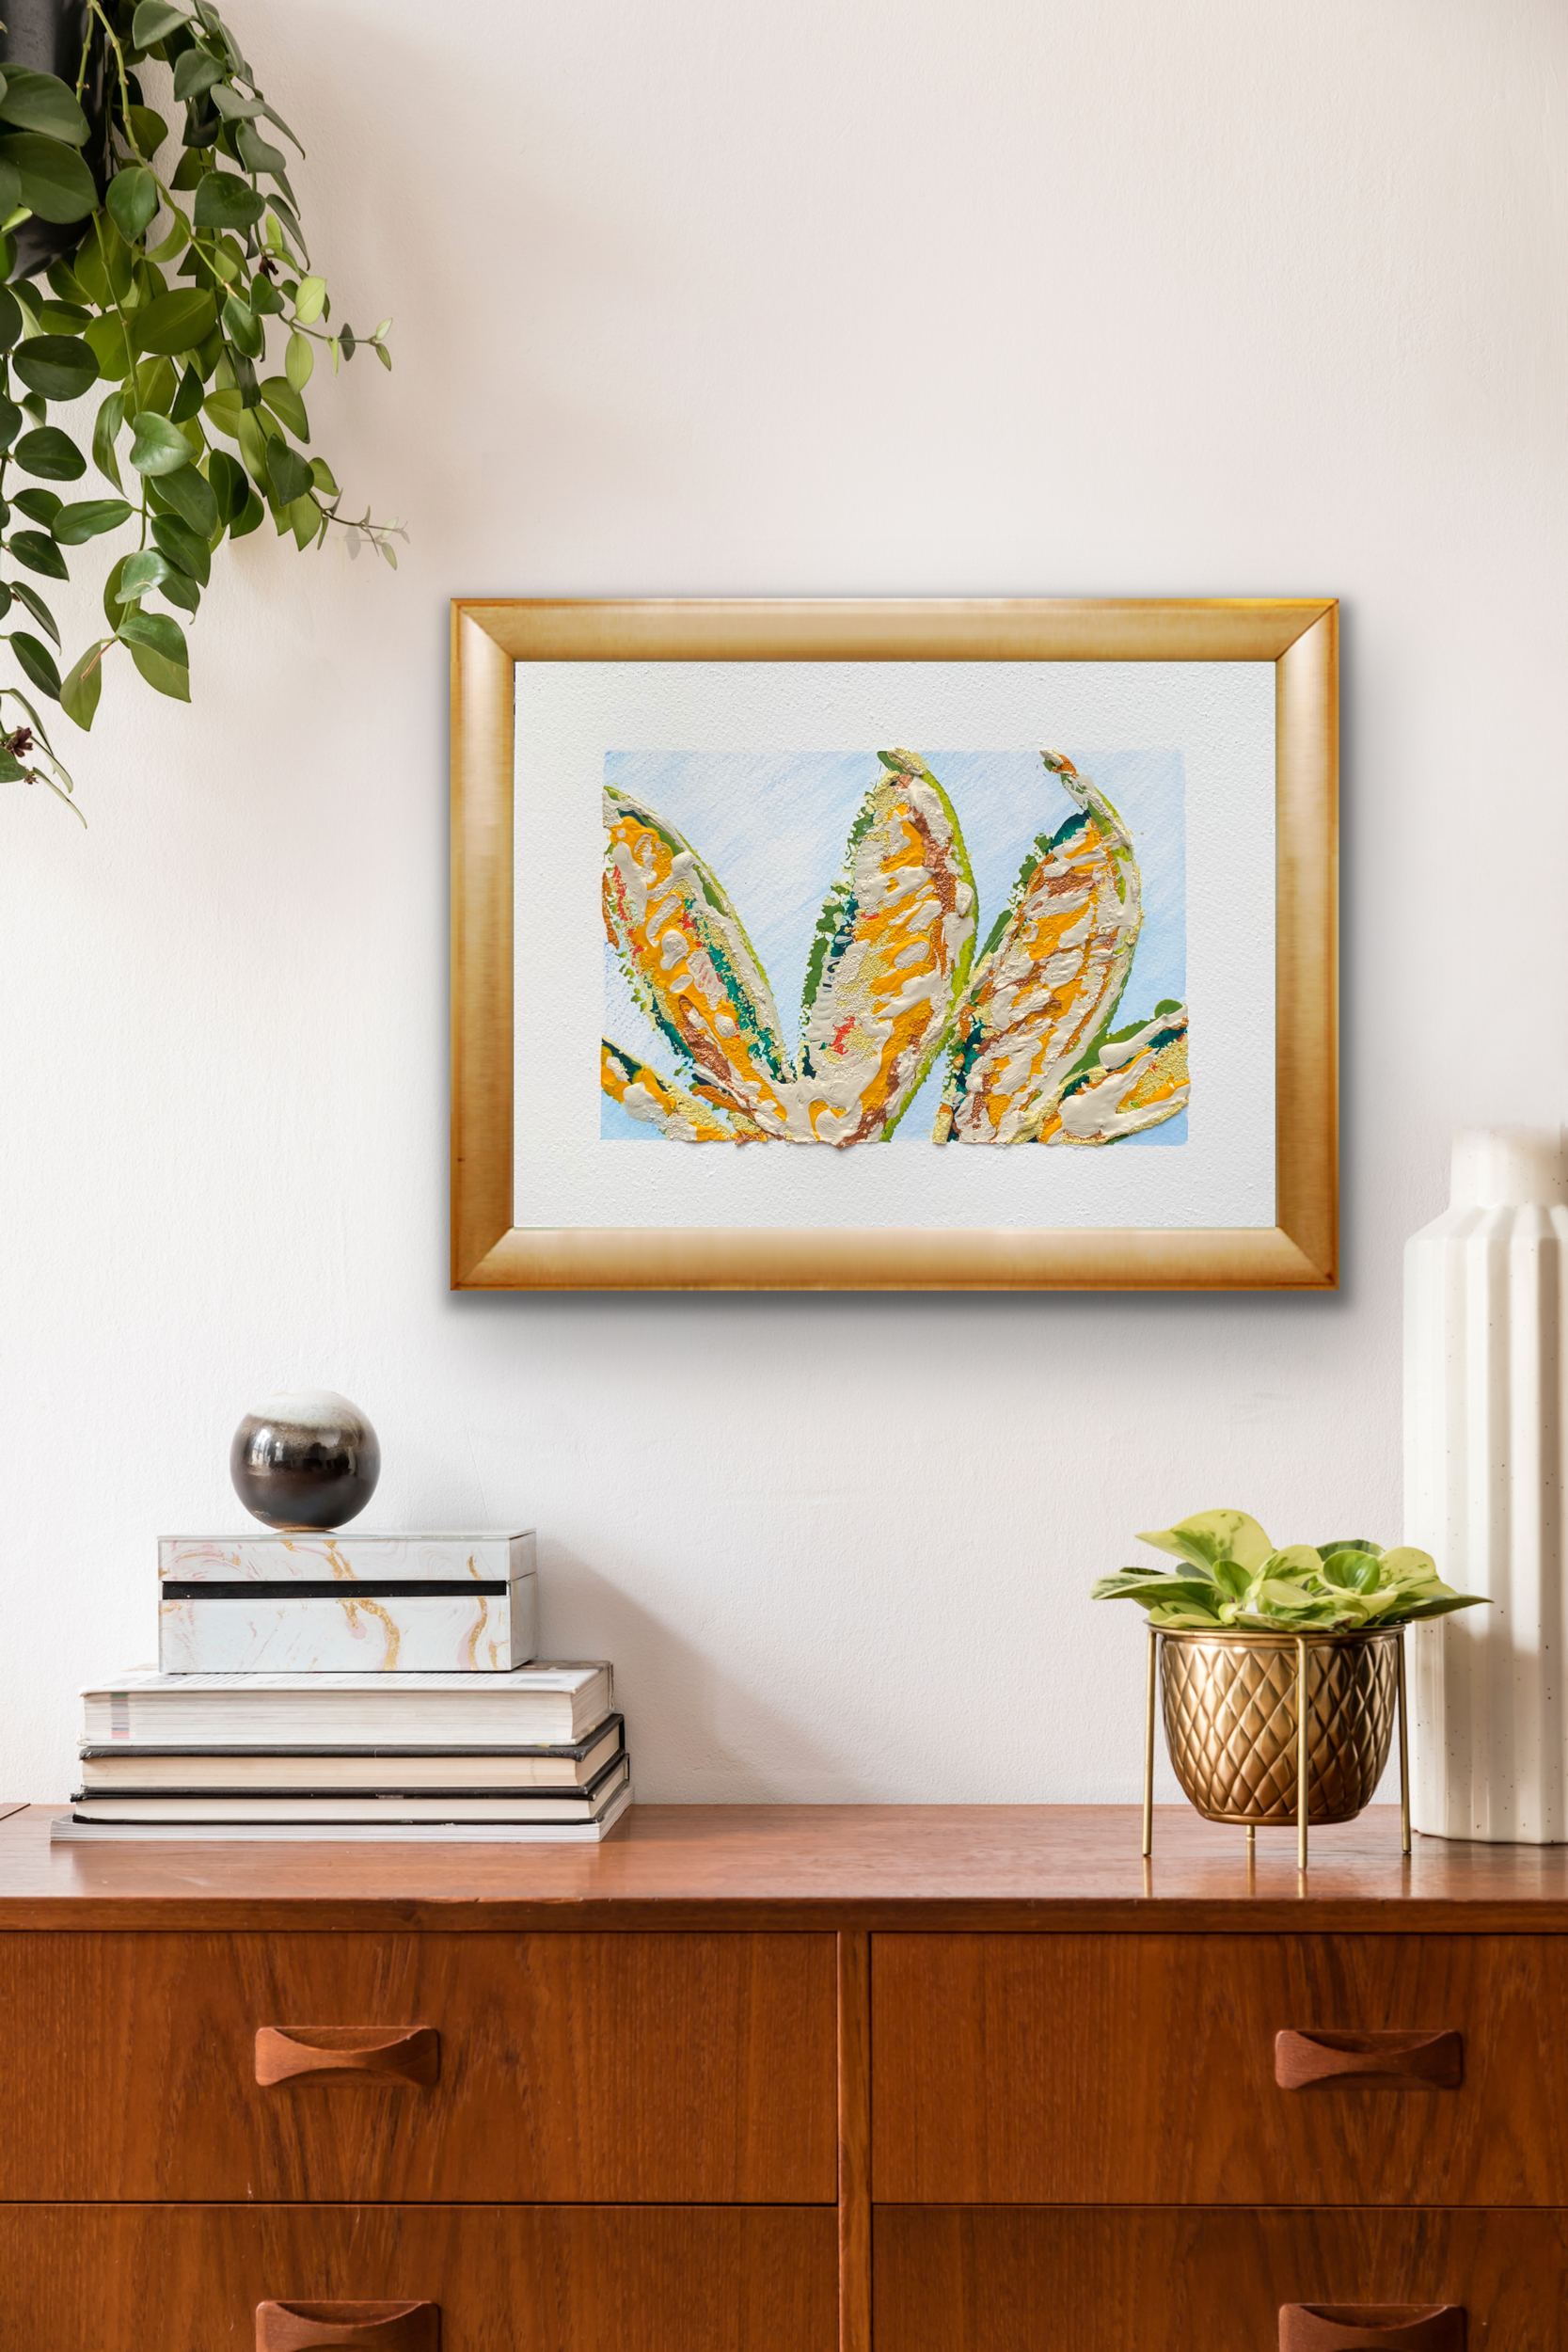 Harvest abstract painting by Michelle Capizzi